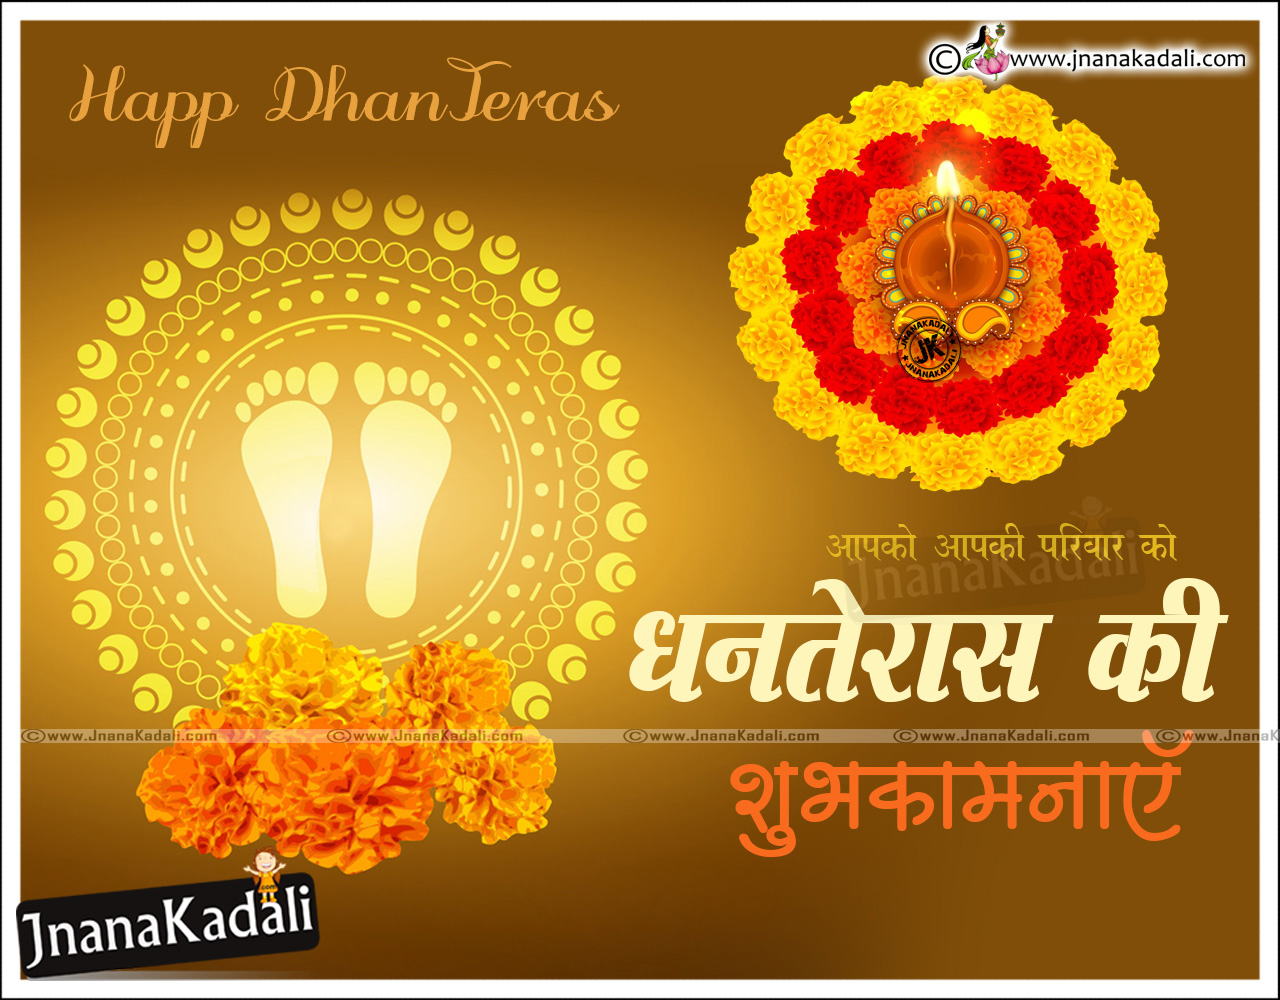 Dhan Teras Wishes Quotes Hd Wallpapers In Hindi Diwali